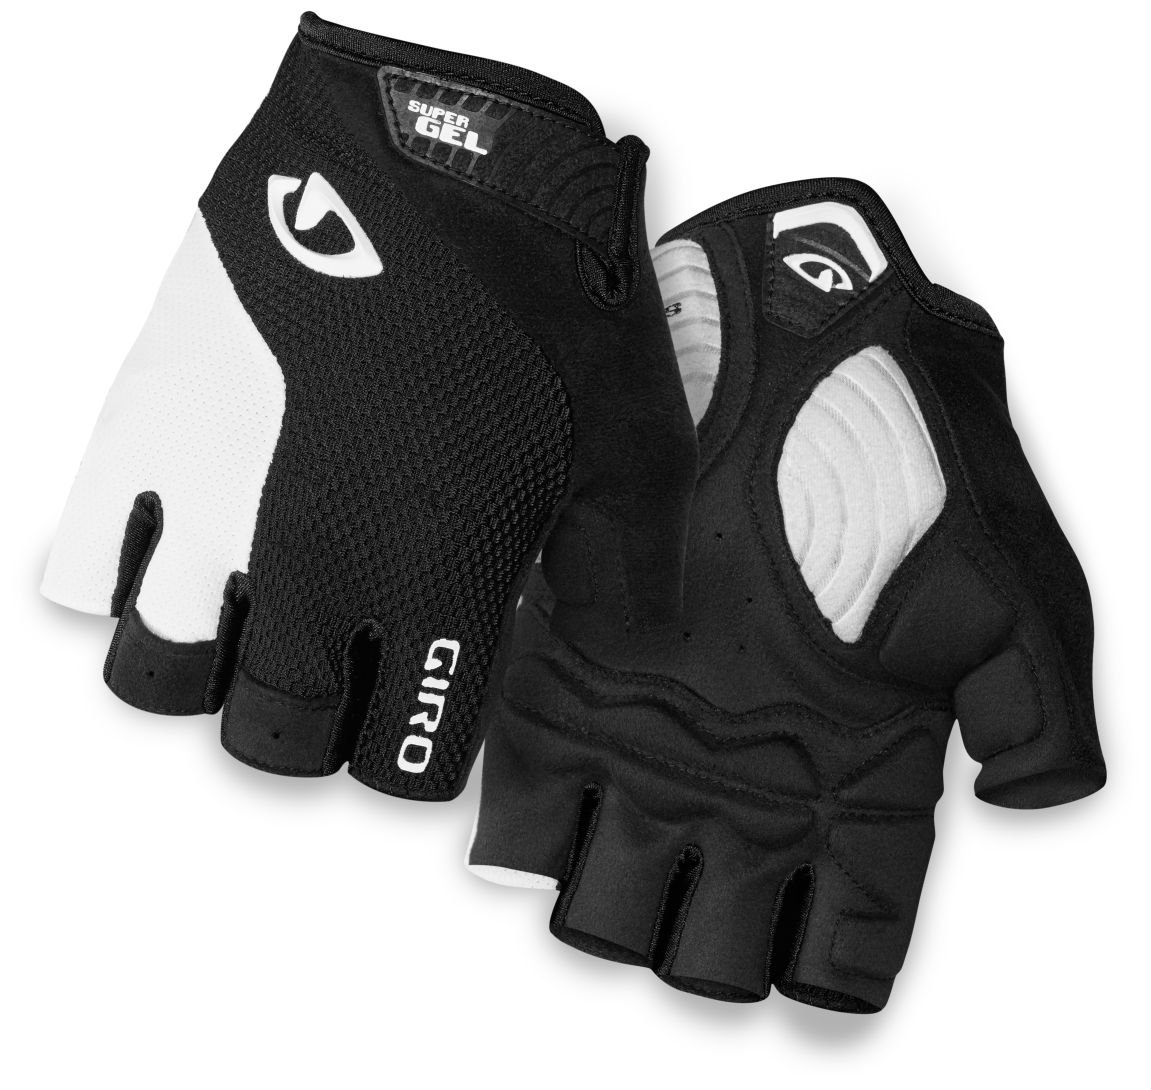 Motorcycle gloves to prevent numbness - Amazon Com Giro Men S Strate Dure Supergel Gloves Sports Outdoors